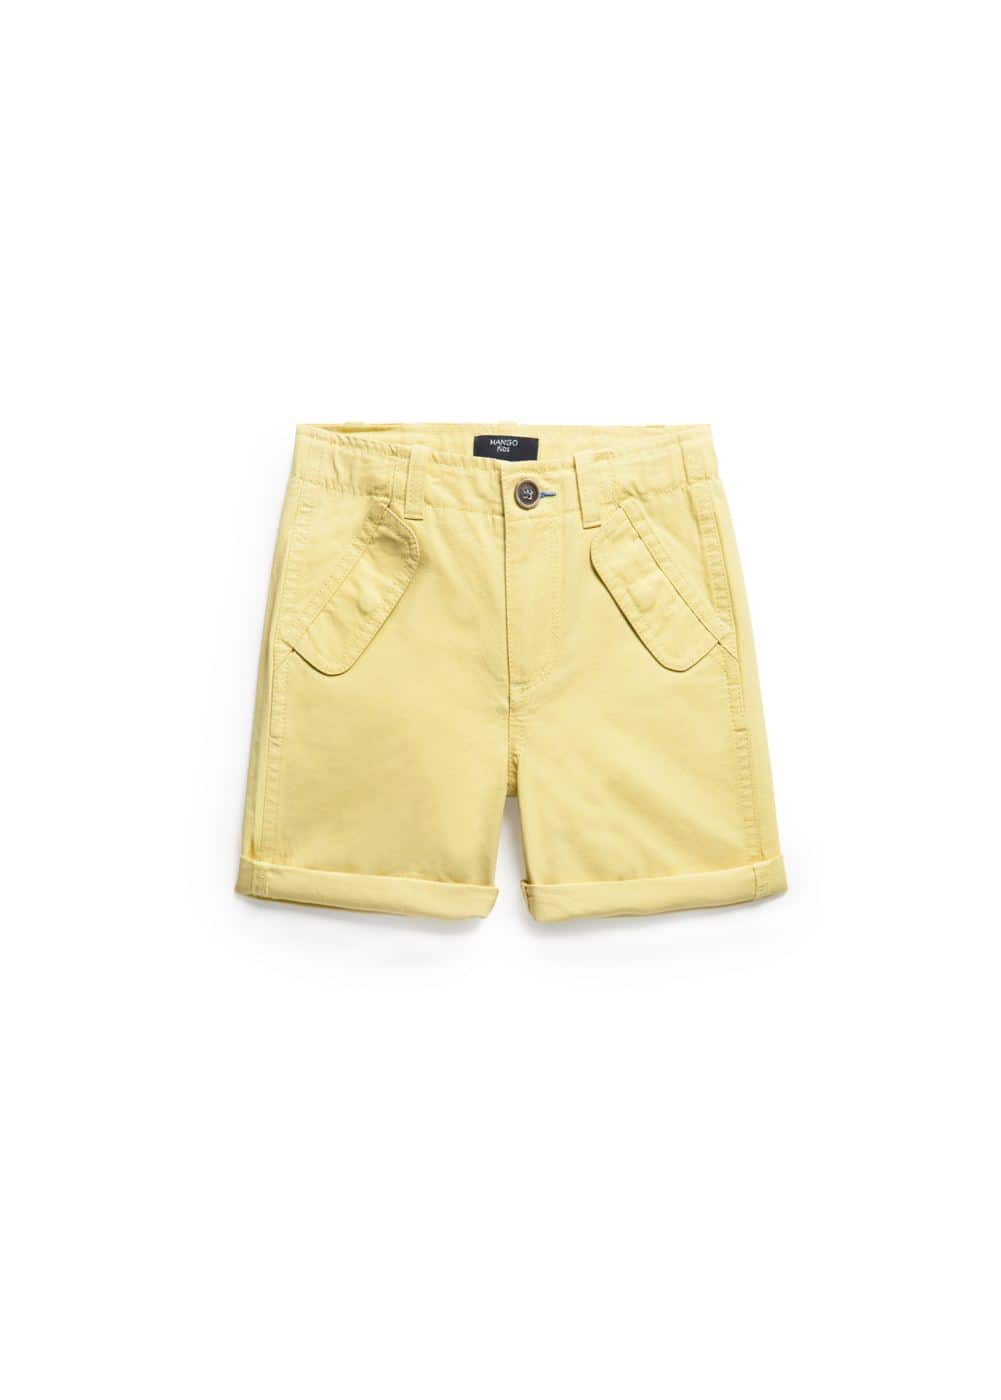 Patch pocket bermuda shorts